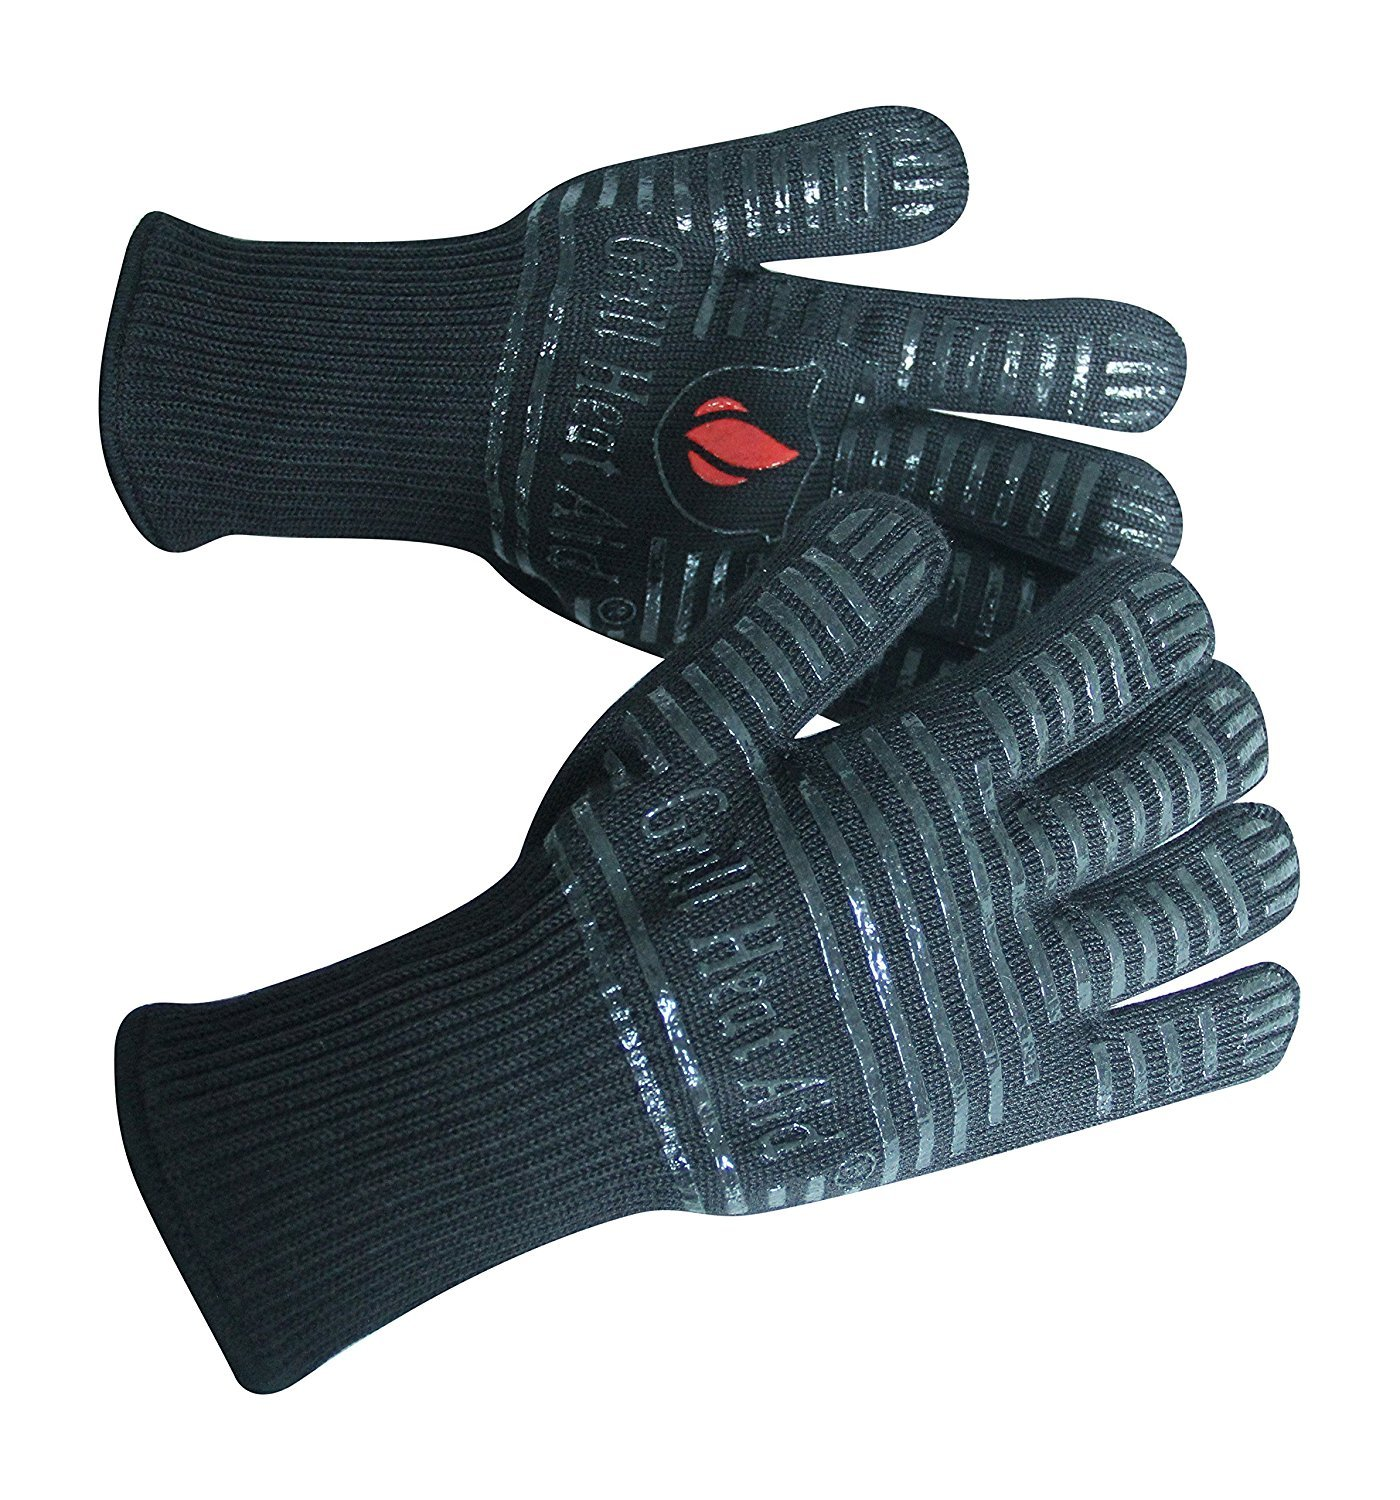 "BBQ Gloves Extreme Heat Resistant for Baking, Smoking, Cooking, Grilling, Barbecue, Fireplace, Indoor/Outdoor Camping – More Flexibility in Your Kitchen Than Oven Mitts, Protect Up to 932°F, 14"" Long"